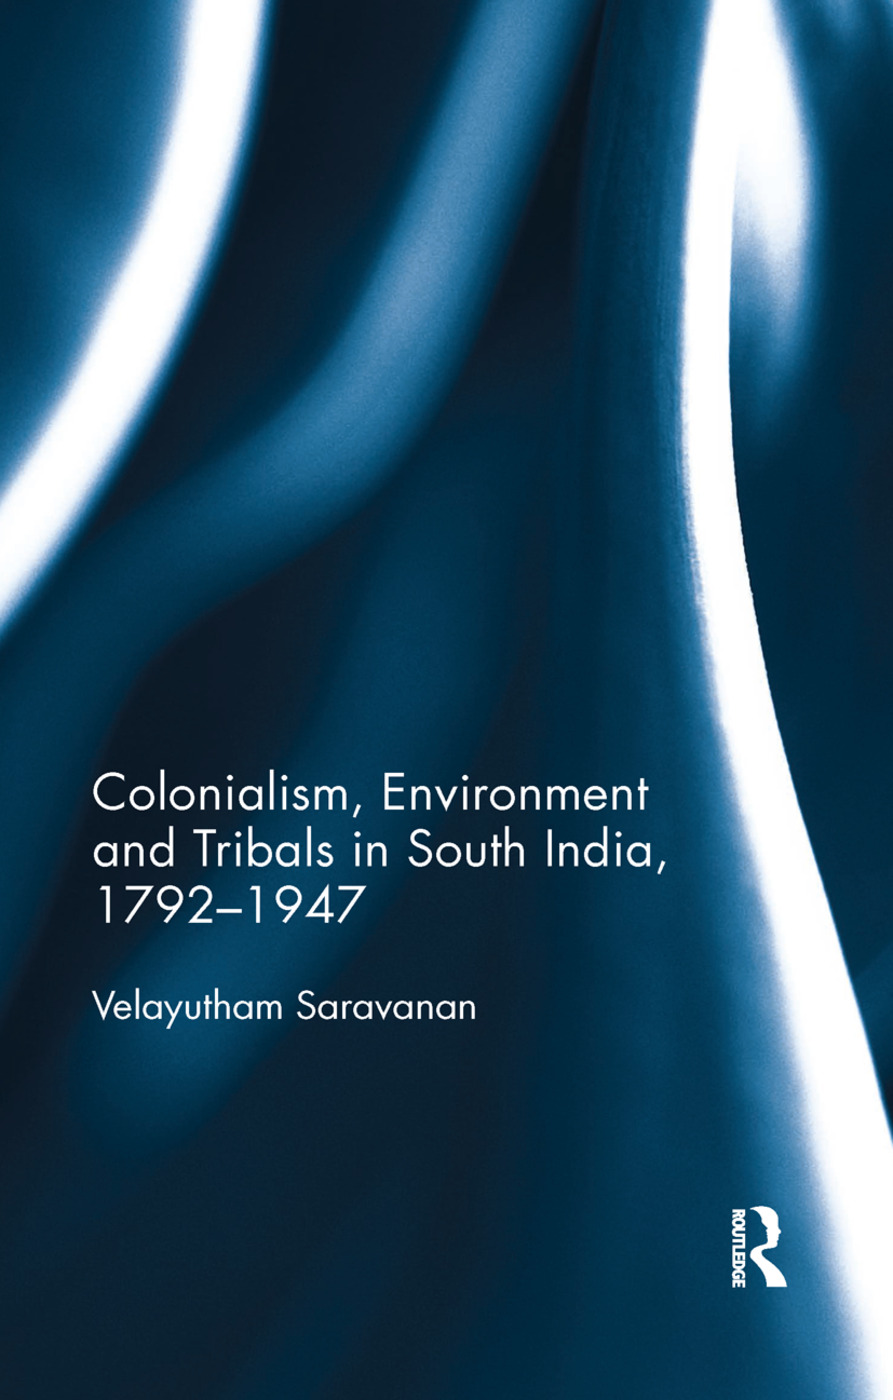 Colonialism, Environment and Tribals in South India,1792-1947